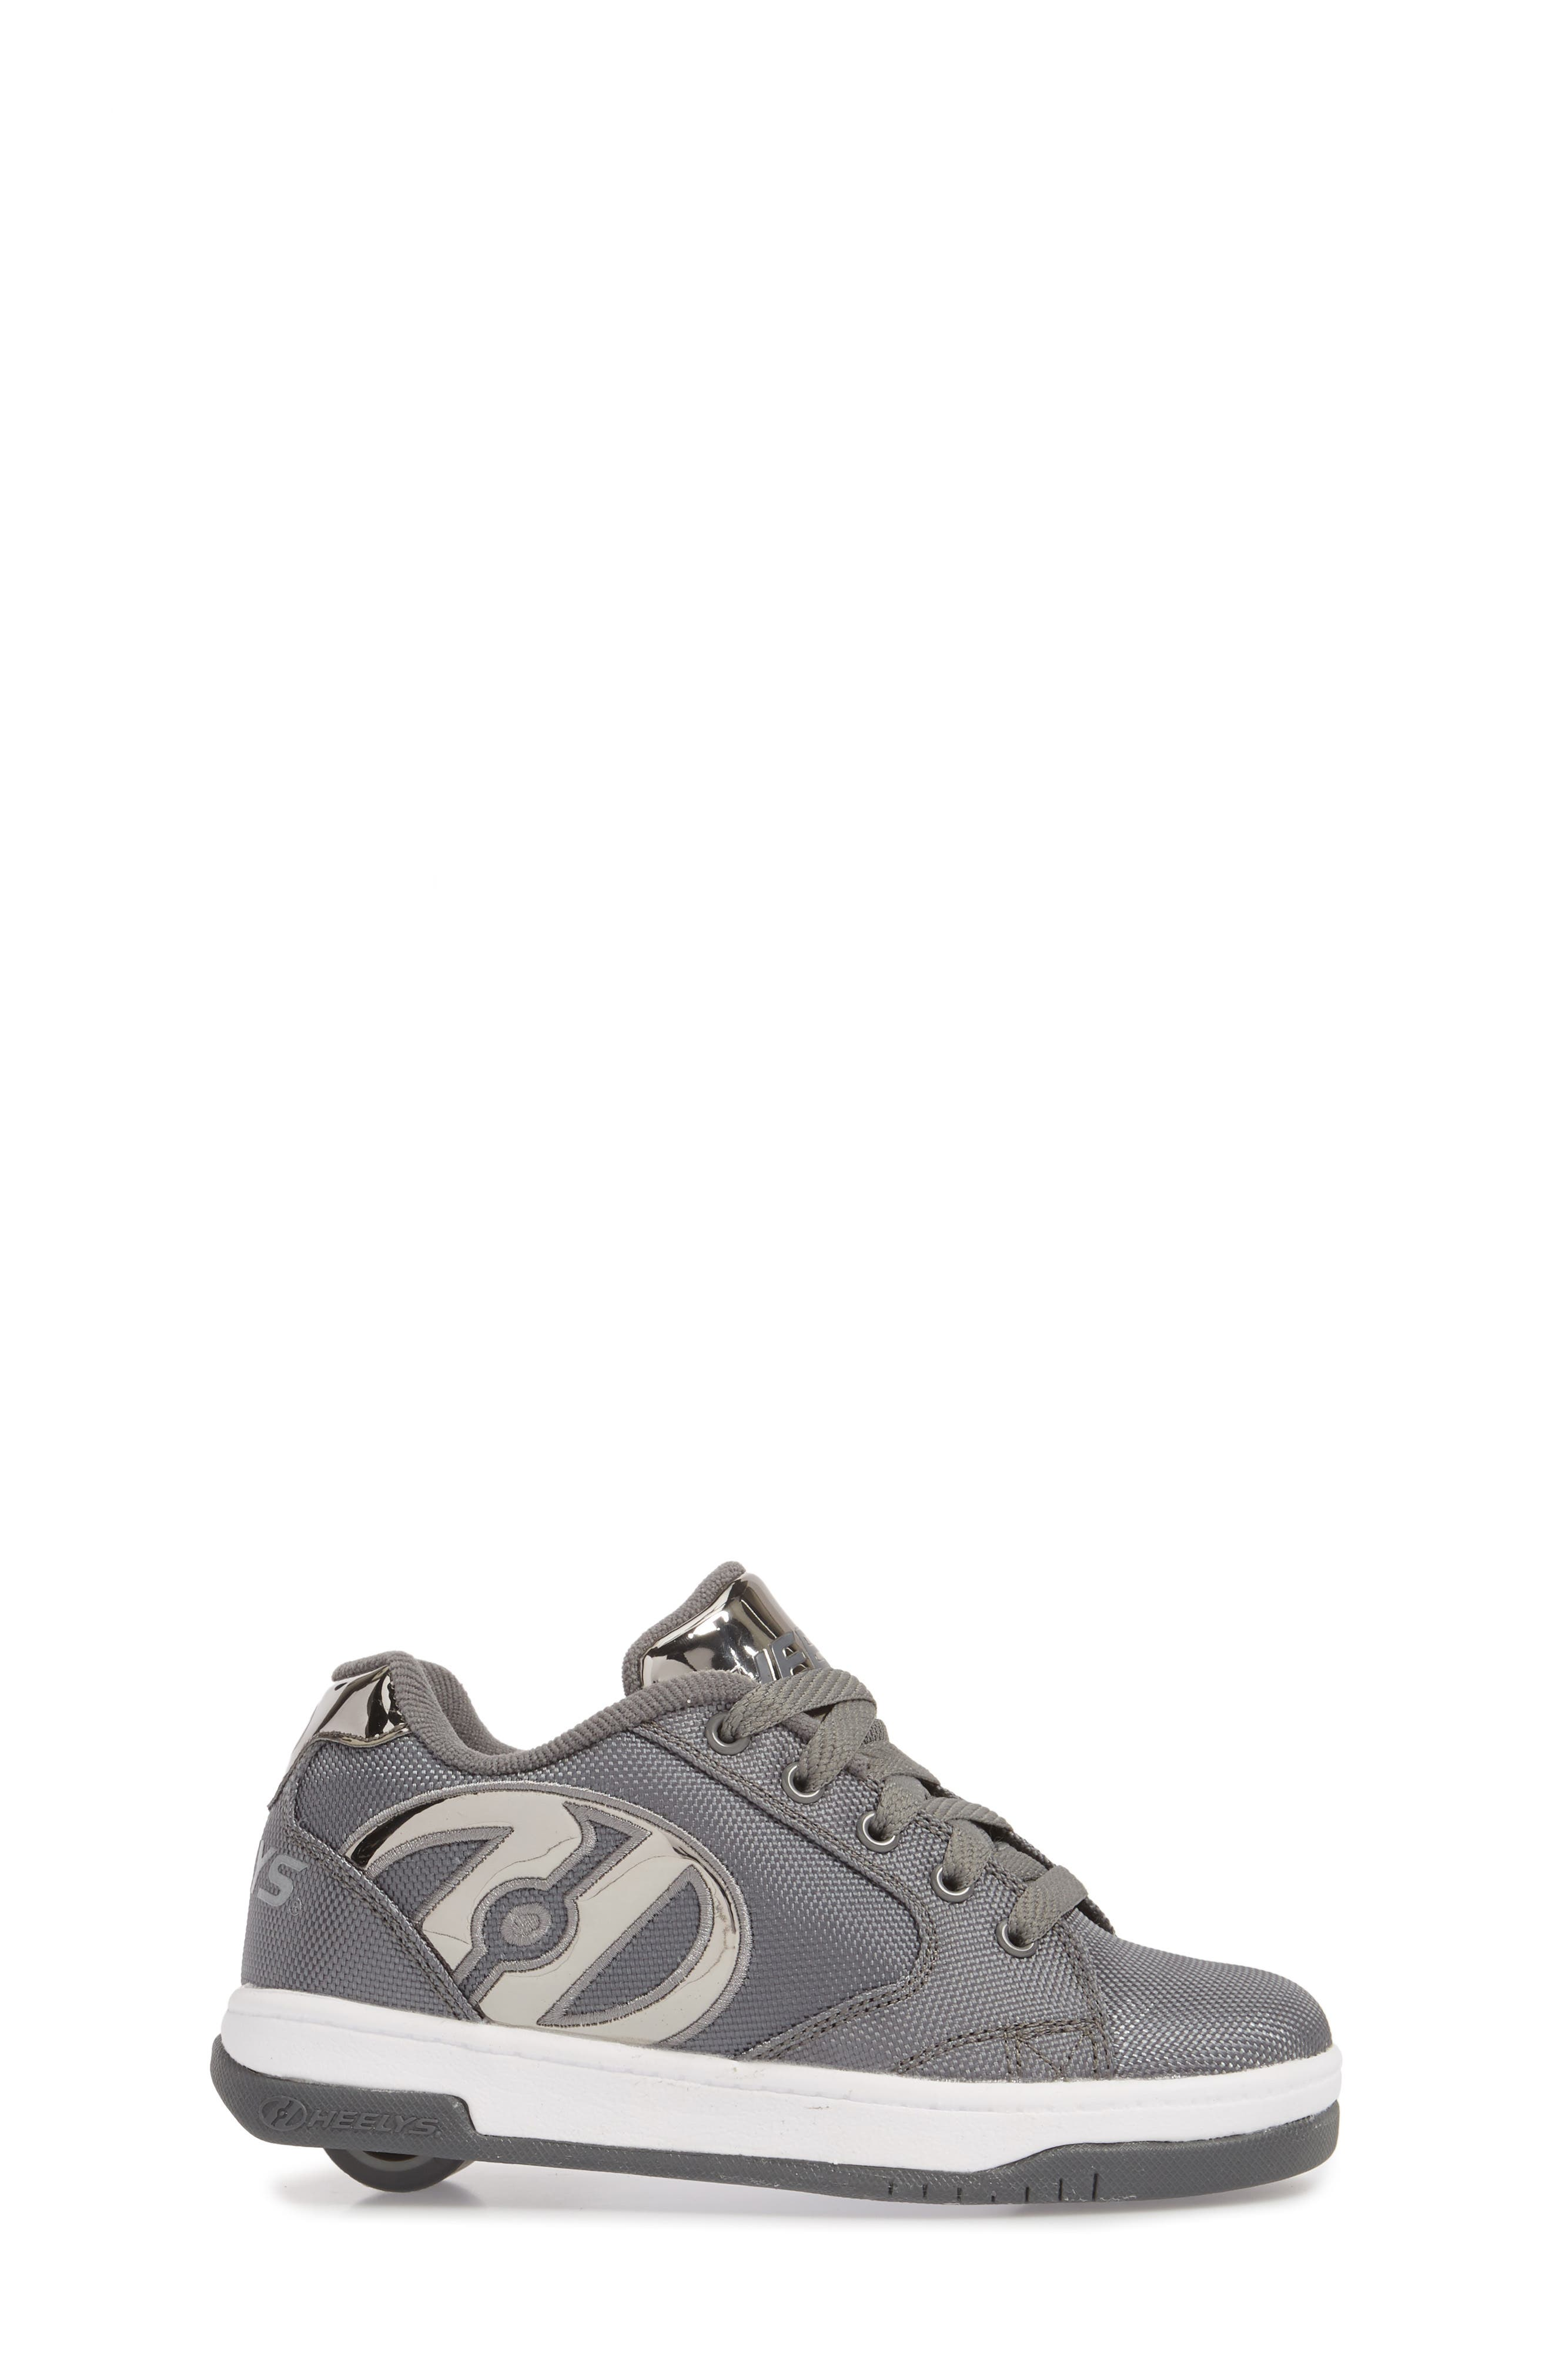 Heels Propel Ballistic Sneaker,                             Alternate thumbnail 3, color,                             CHARCOAL/ PEWTER